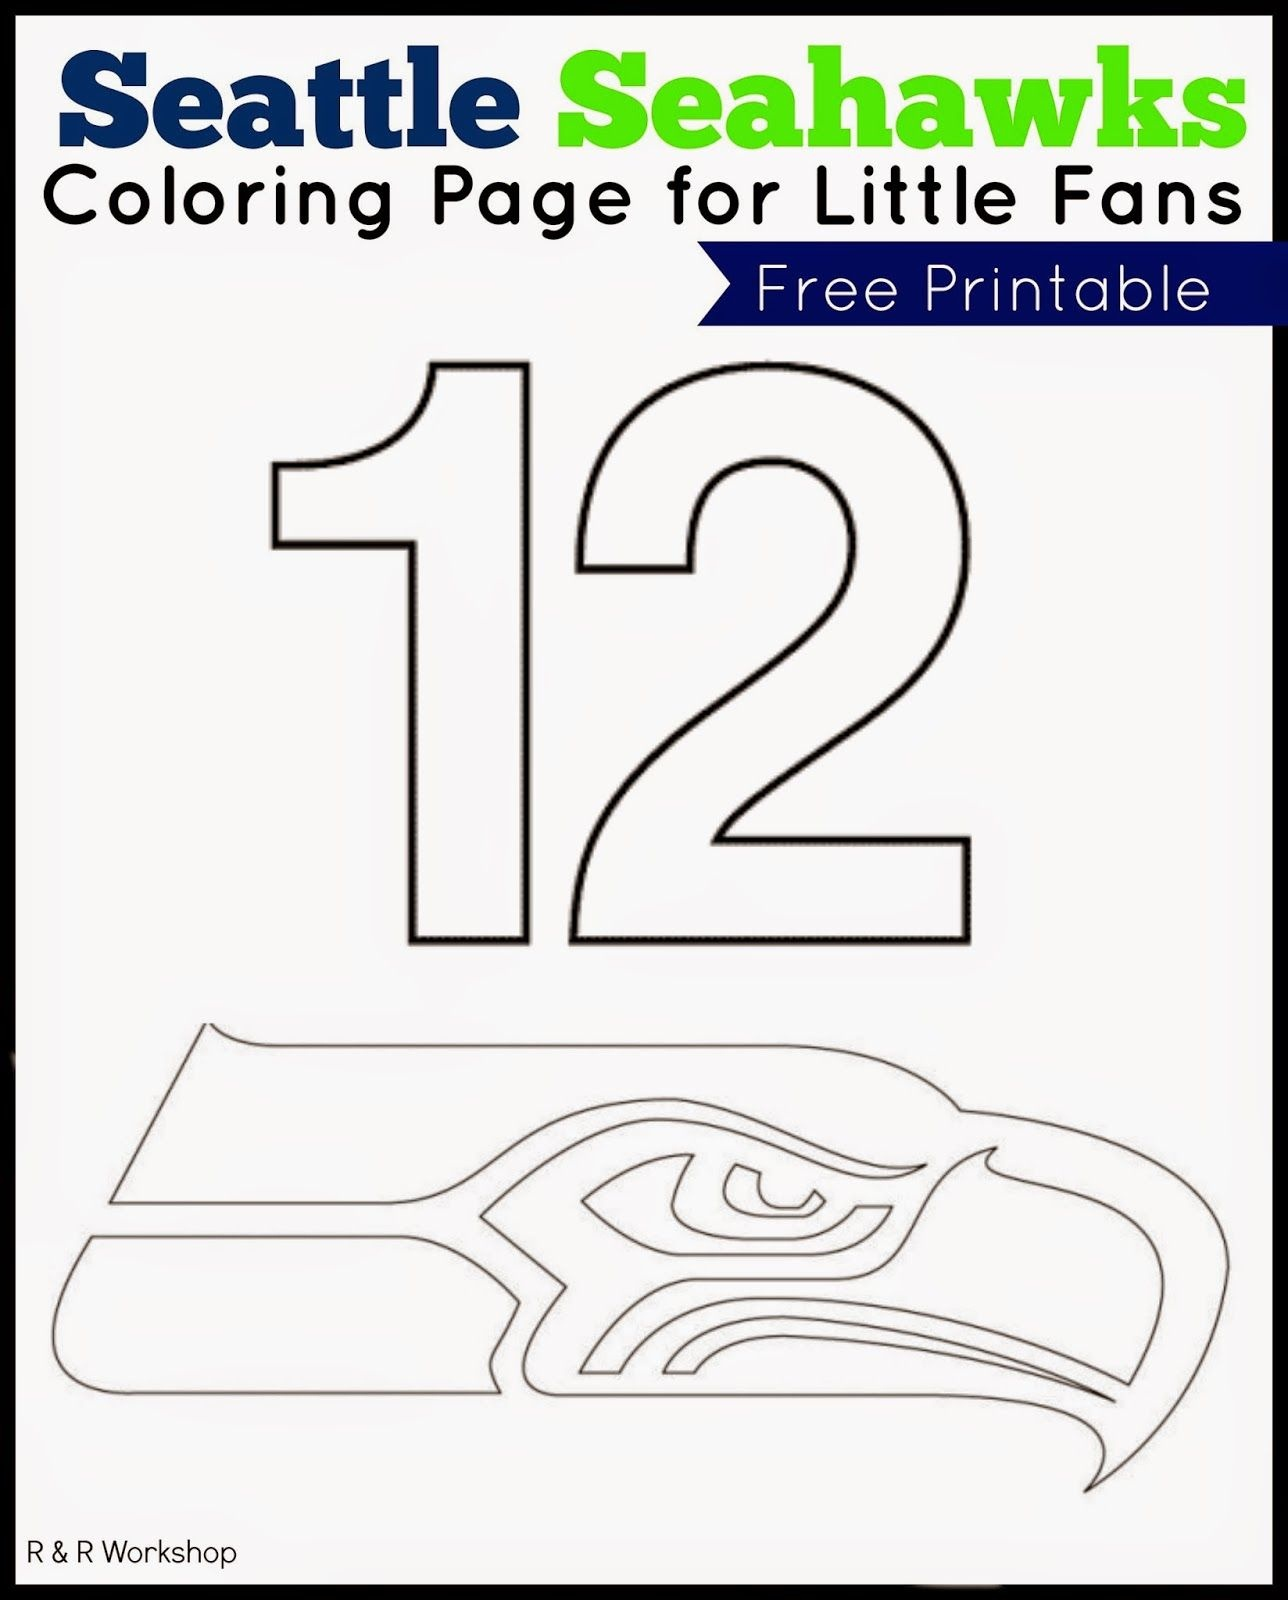 Seattle Seahawks Coloring Page For Kids | Ogt Blogger Friends - Free Printable Seahawks Coloring Pages